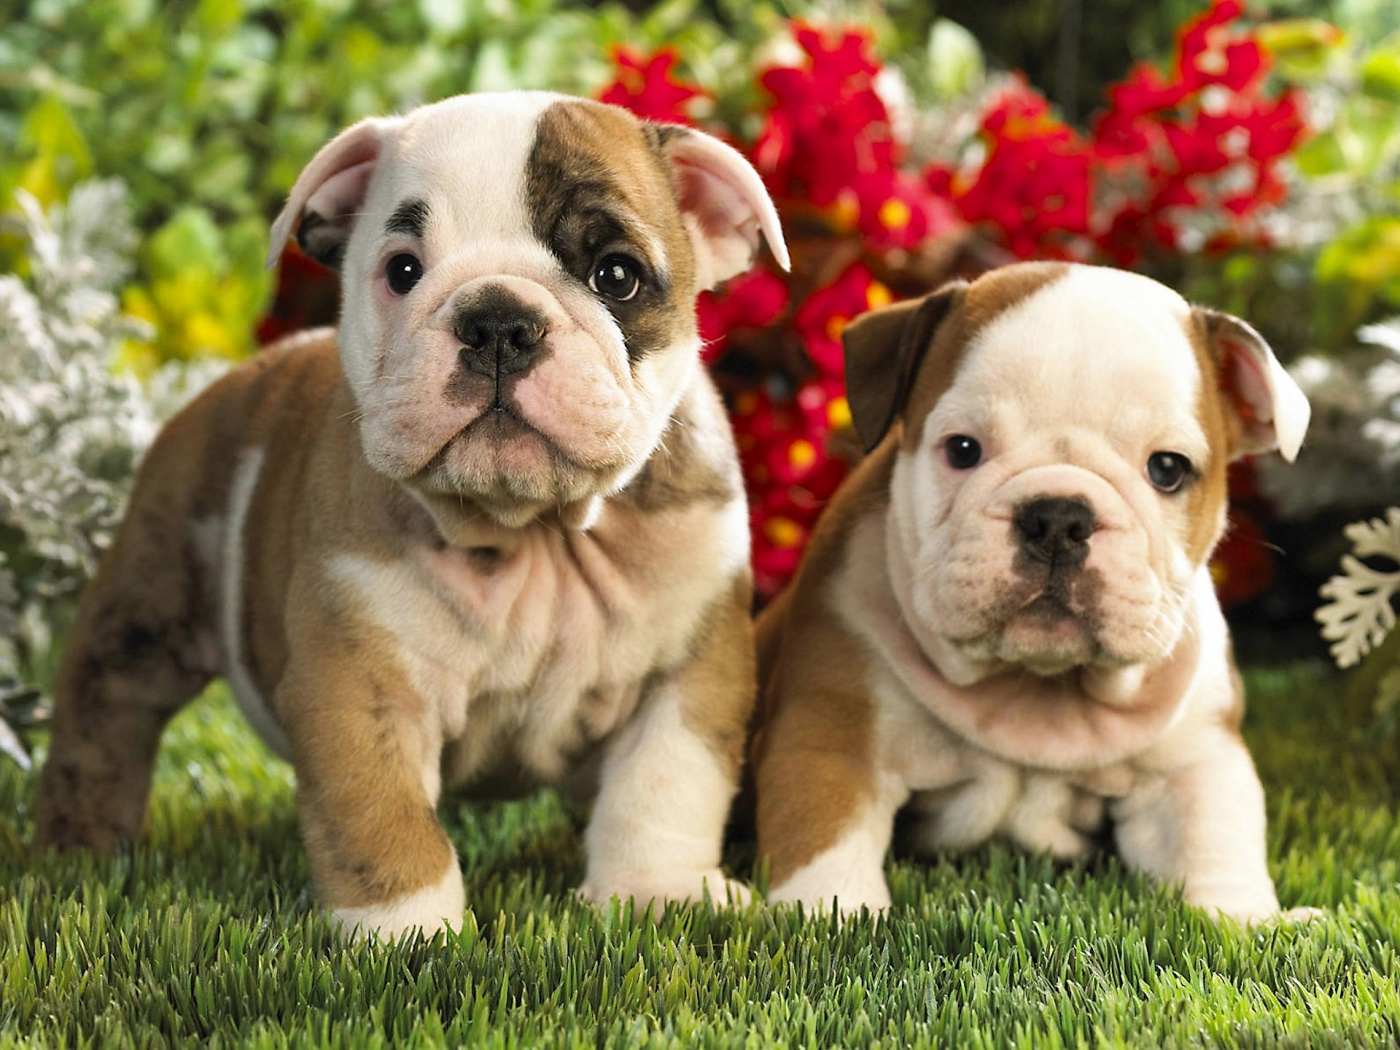 French bulldog puppies - photo#17